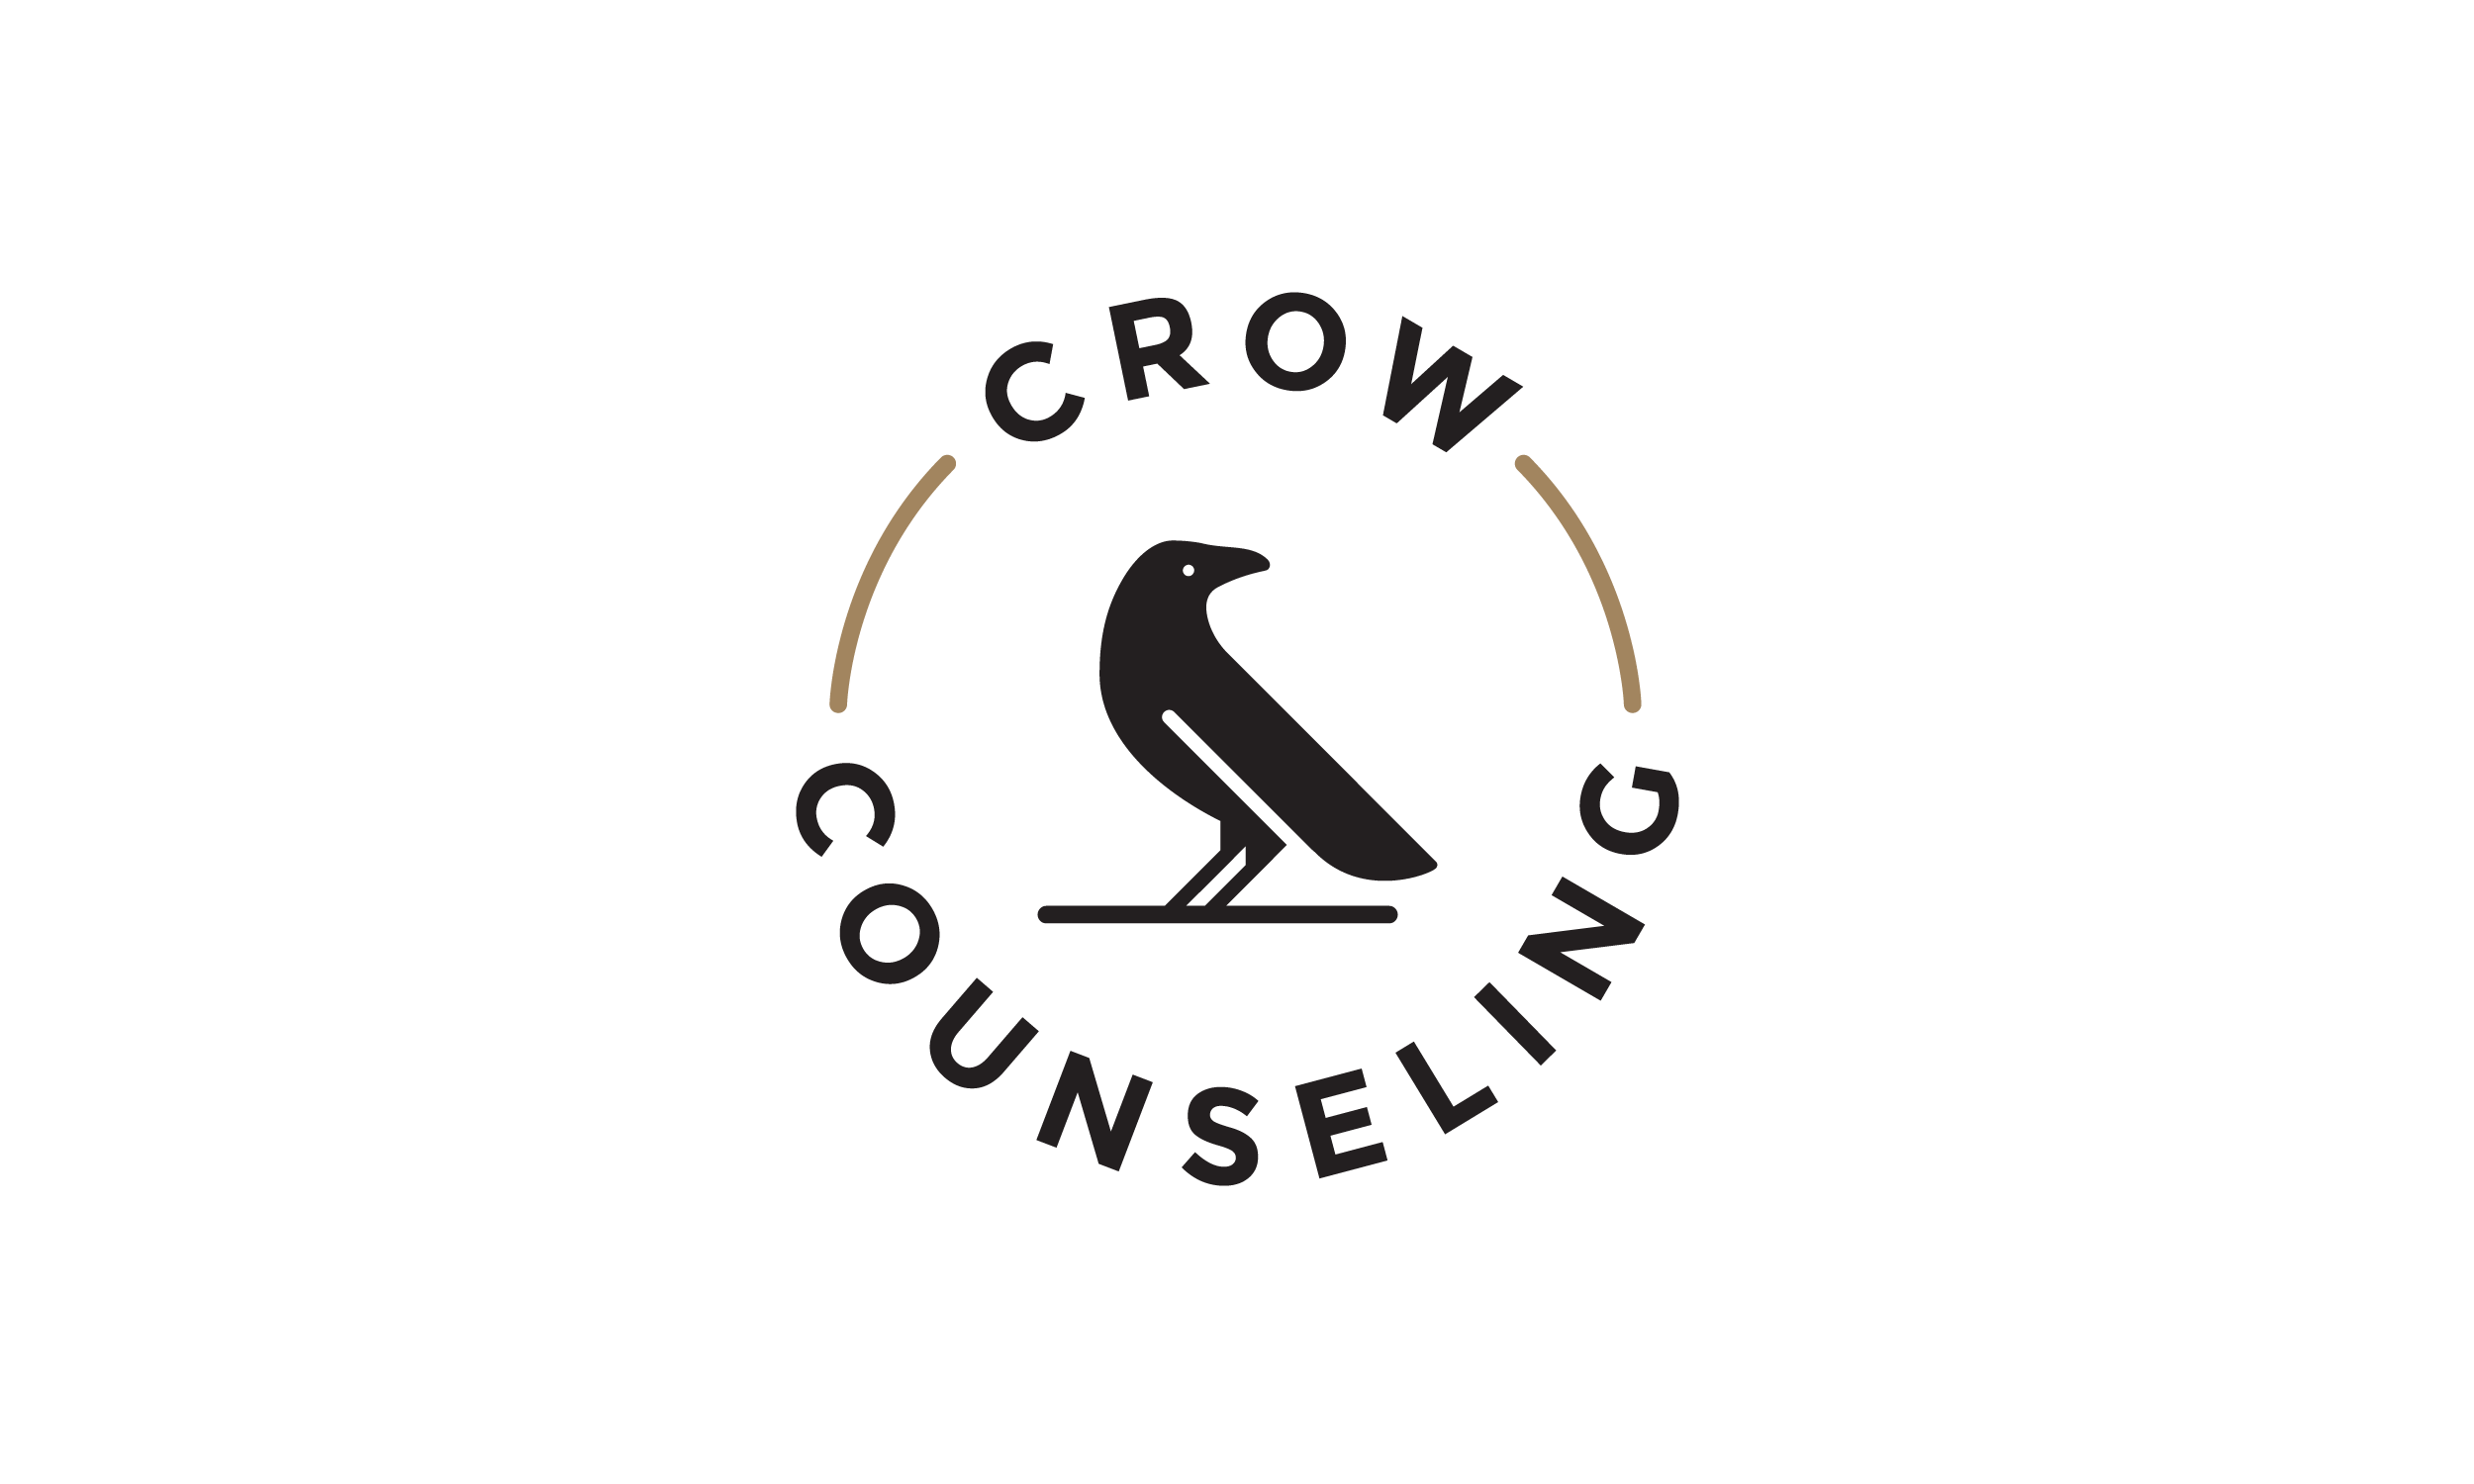 Crow_Counseling_Logo_White_2500x1500.png